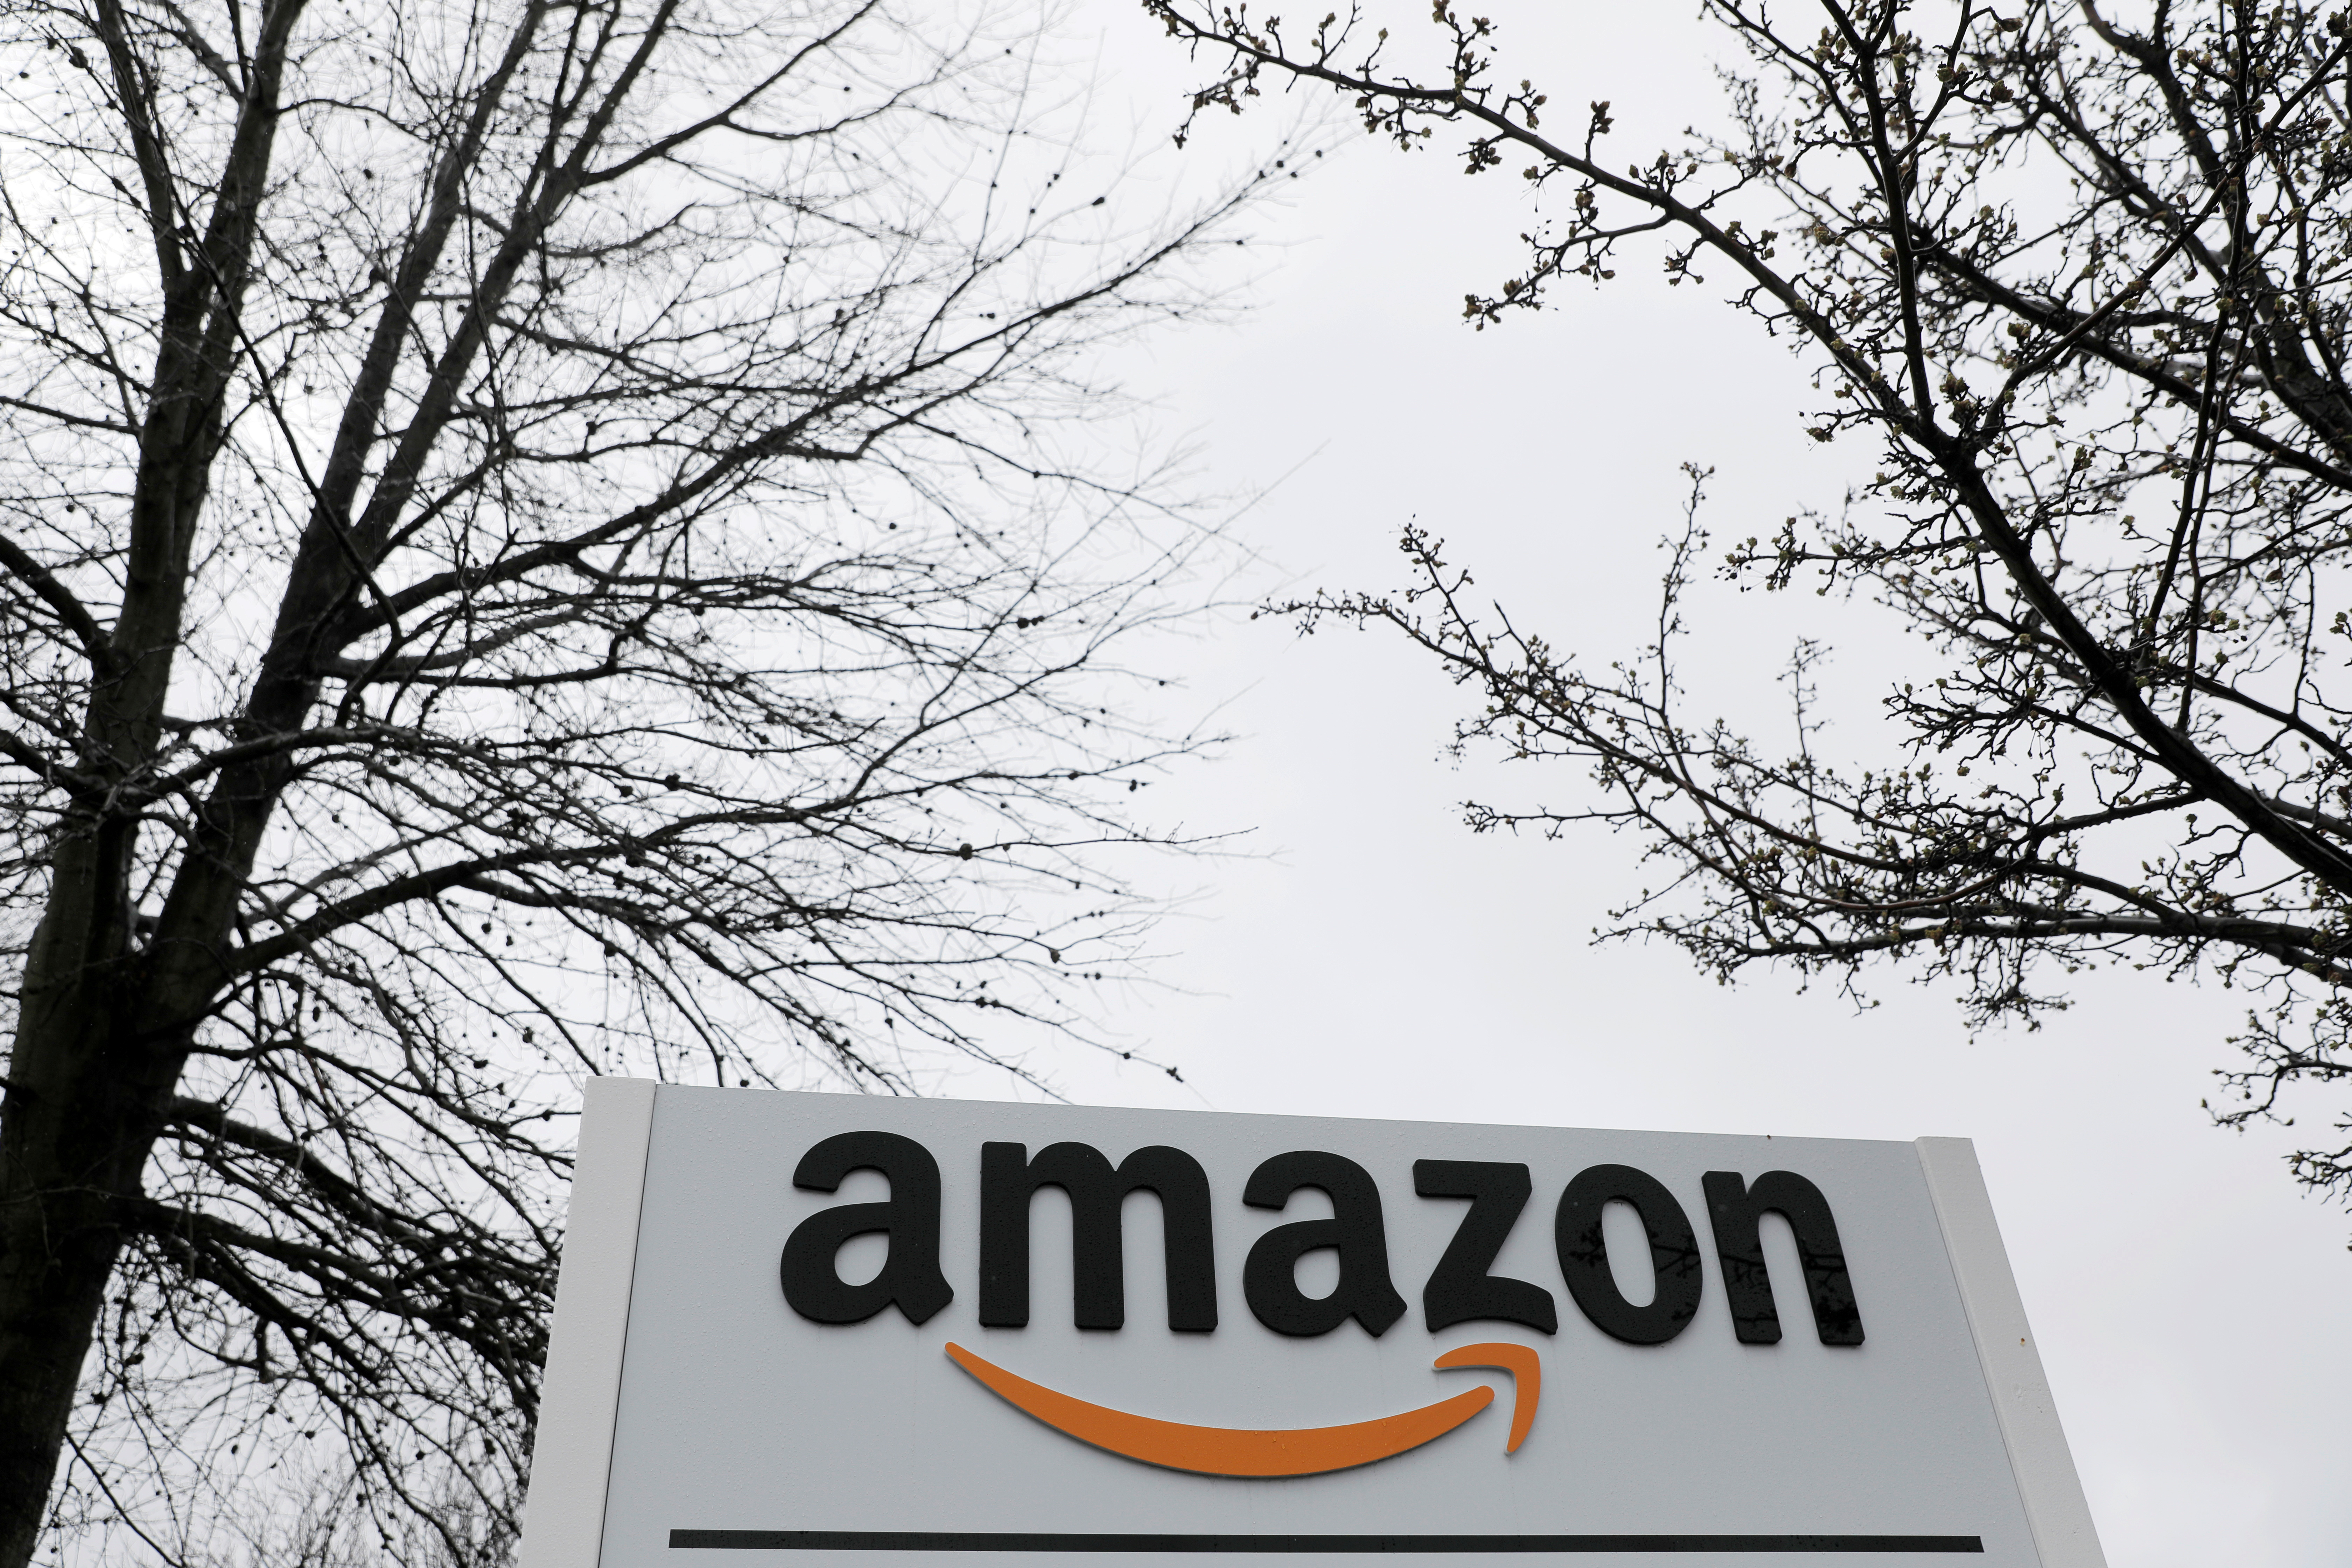 Signage is seen at an Amazon facility in Bethpage on Long Island in New York, U.S., March 17, 2020. REUTERS/Andrew Kelly/File Photo